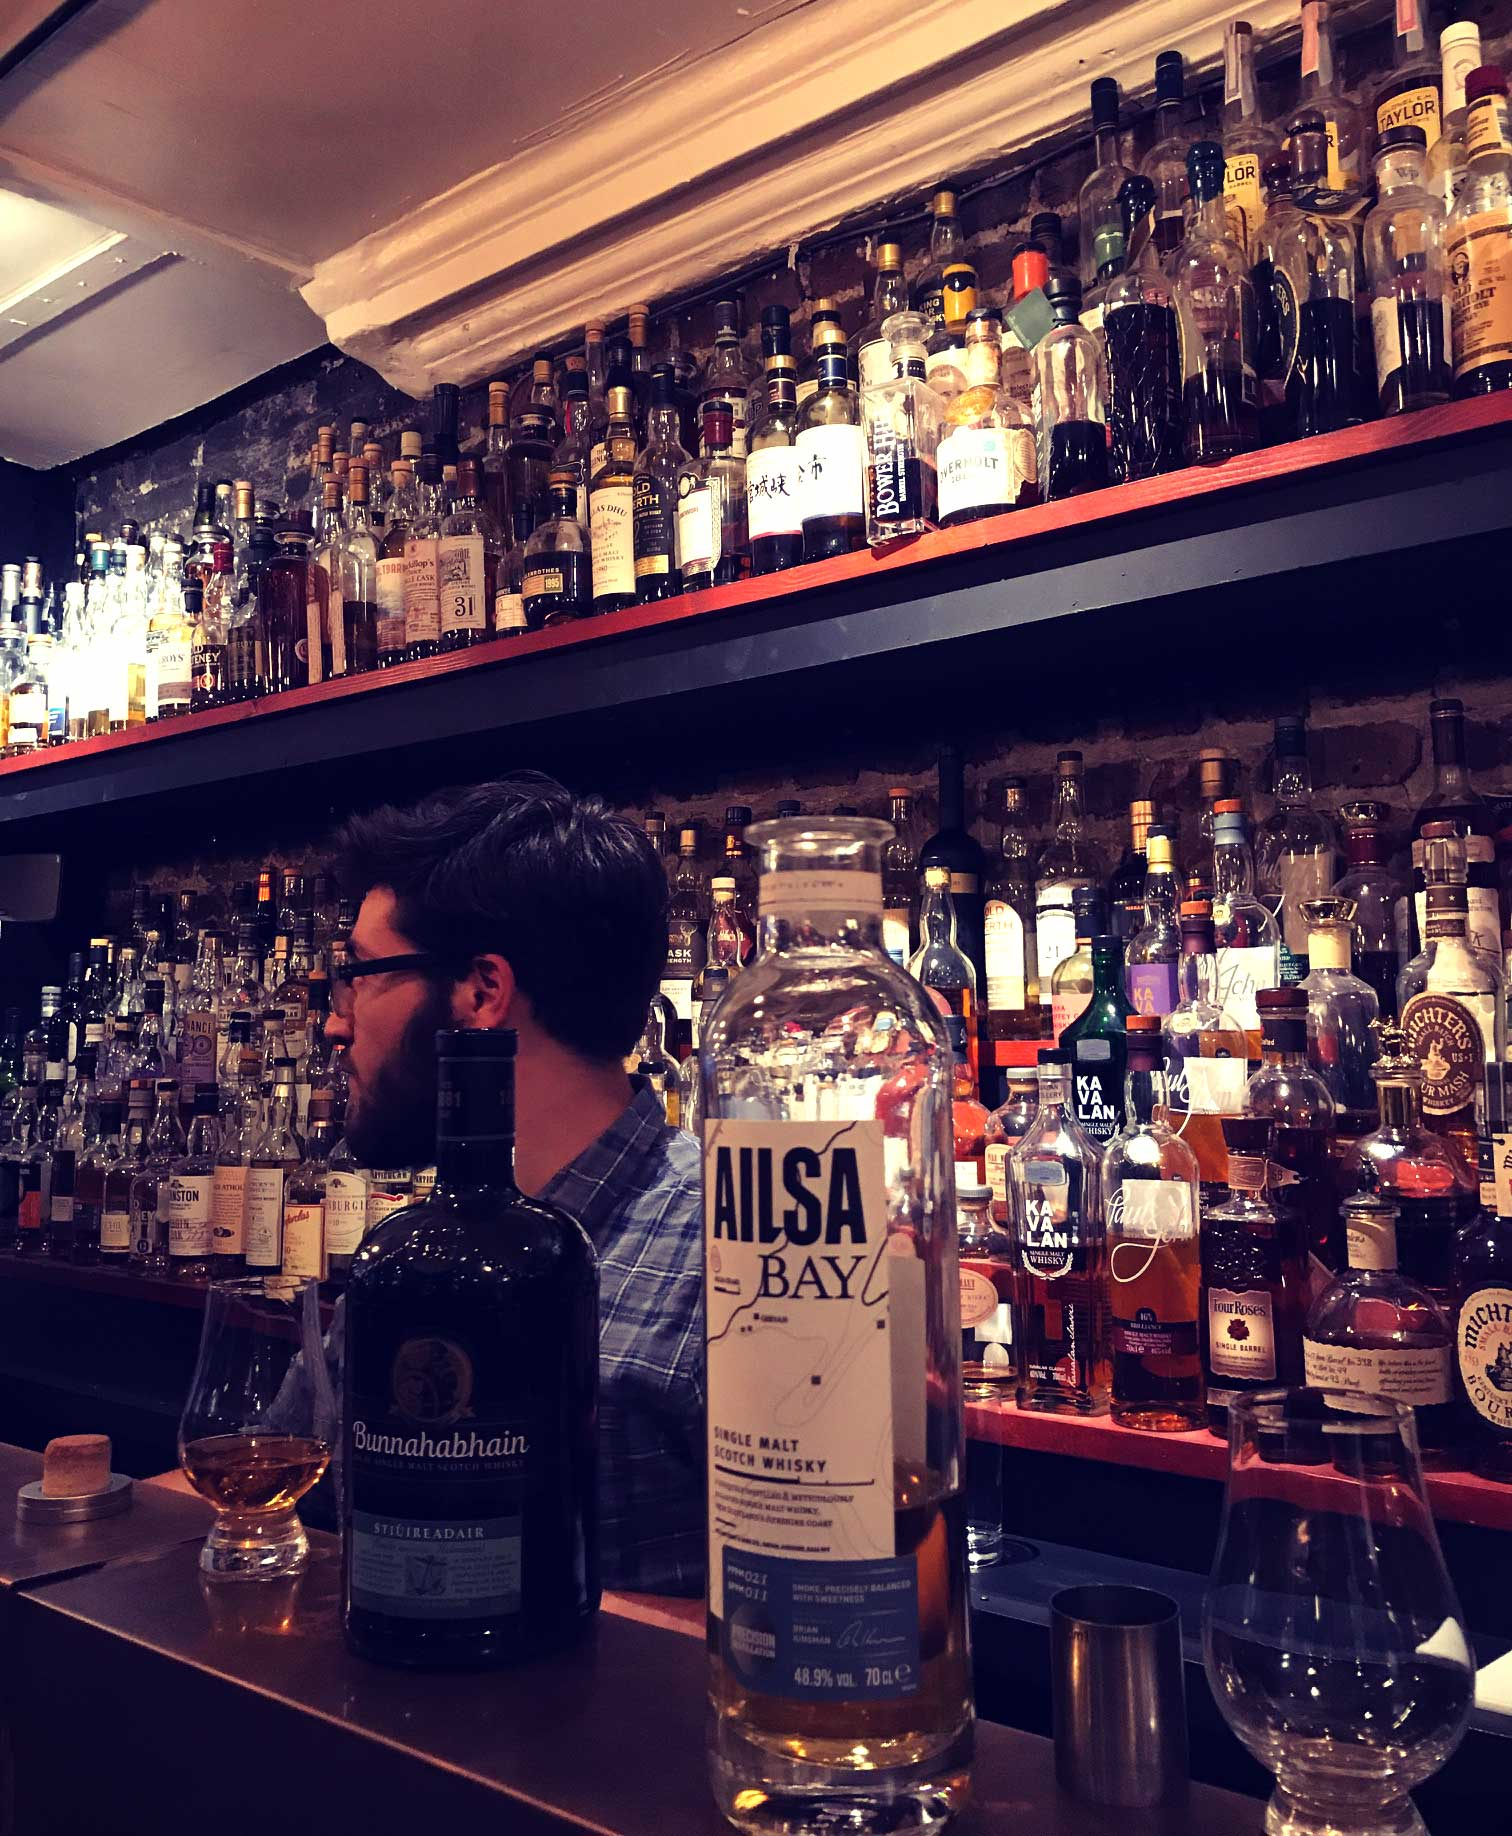 whisky-bar.jpg